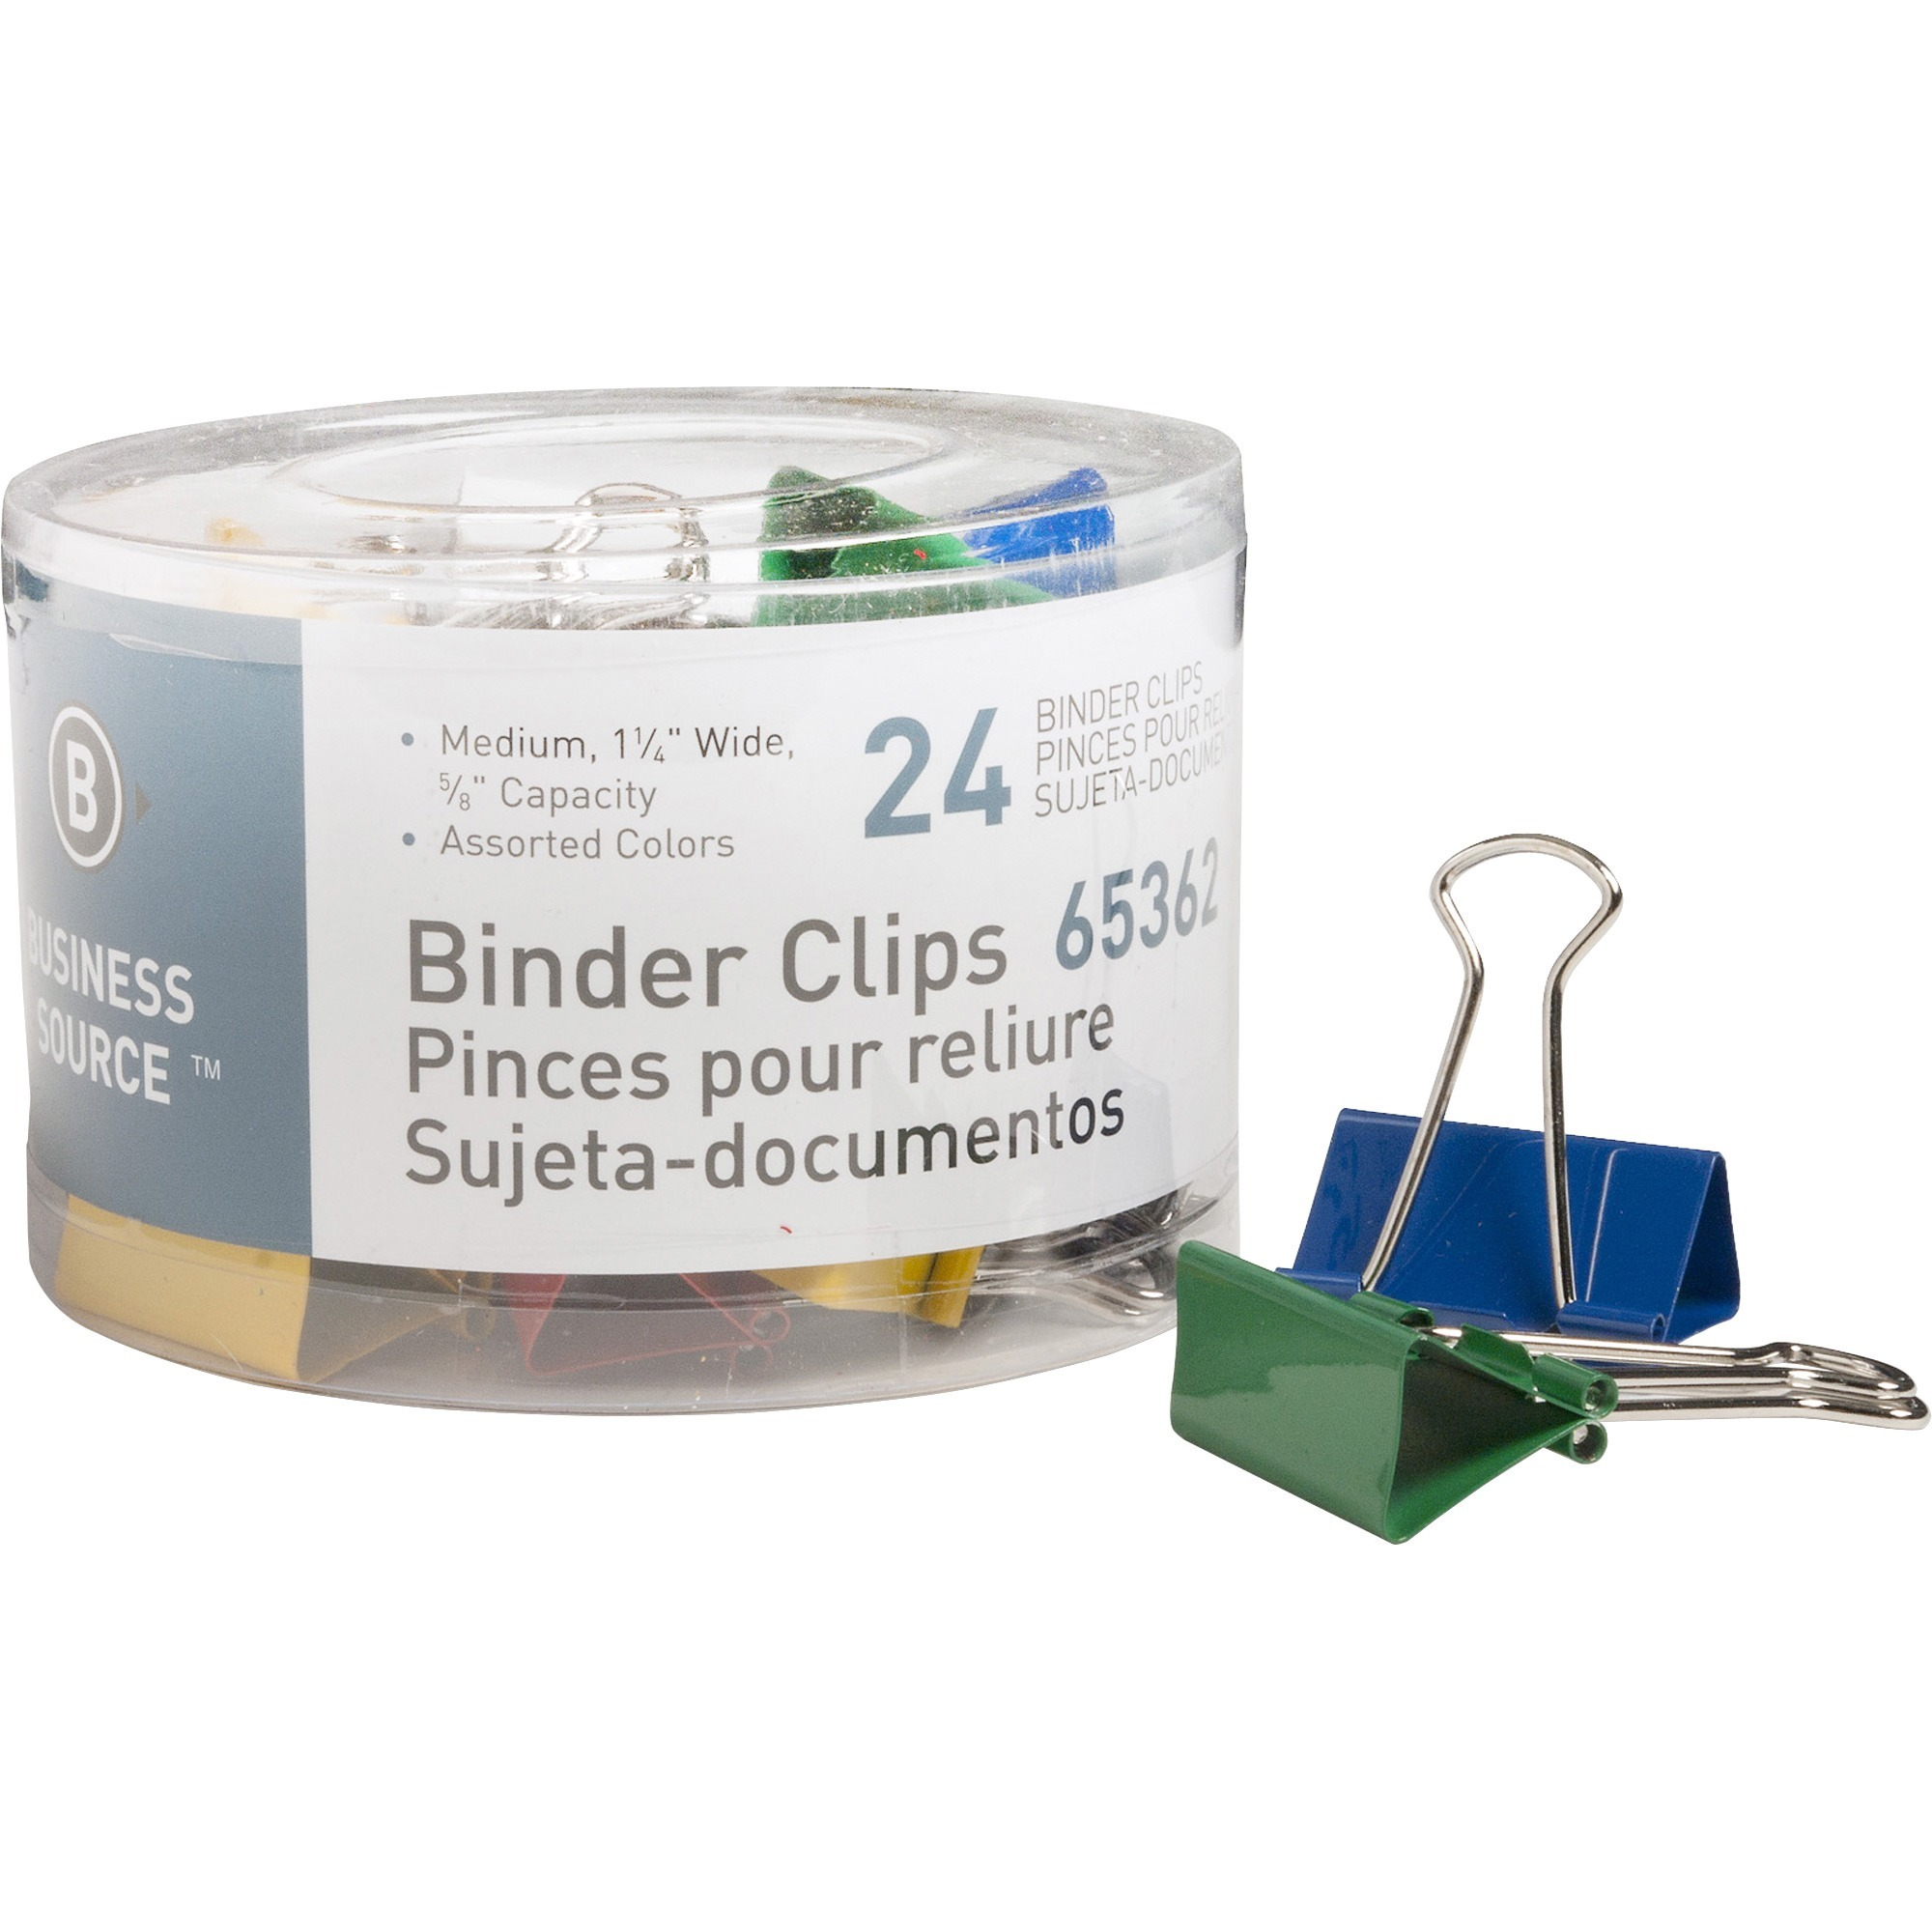 Home Office Supplies General Supplies Clips: Ocean Stationery And Office Supplies :: Office Supplies